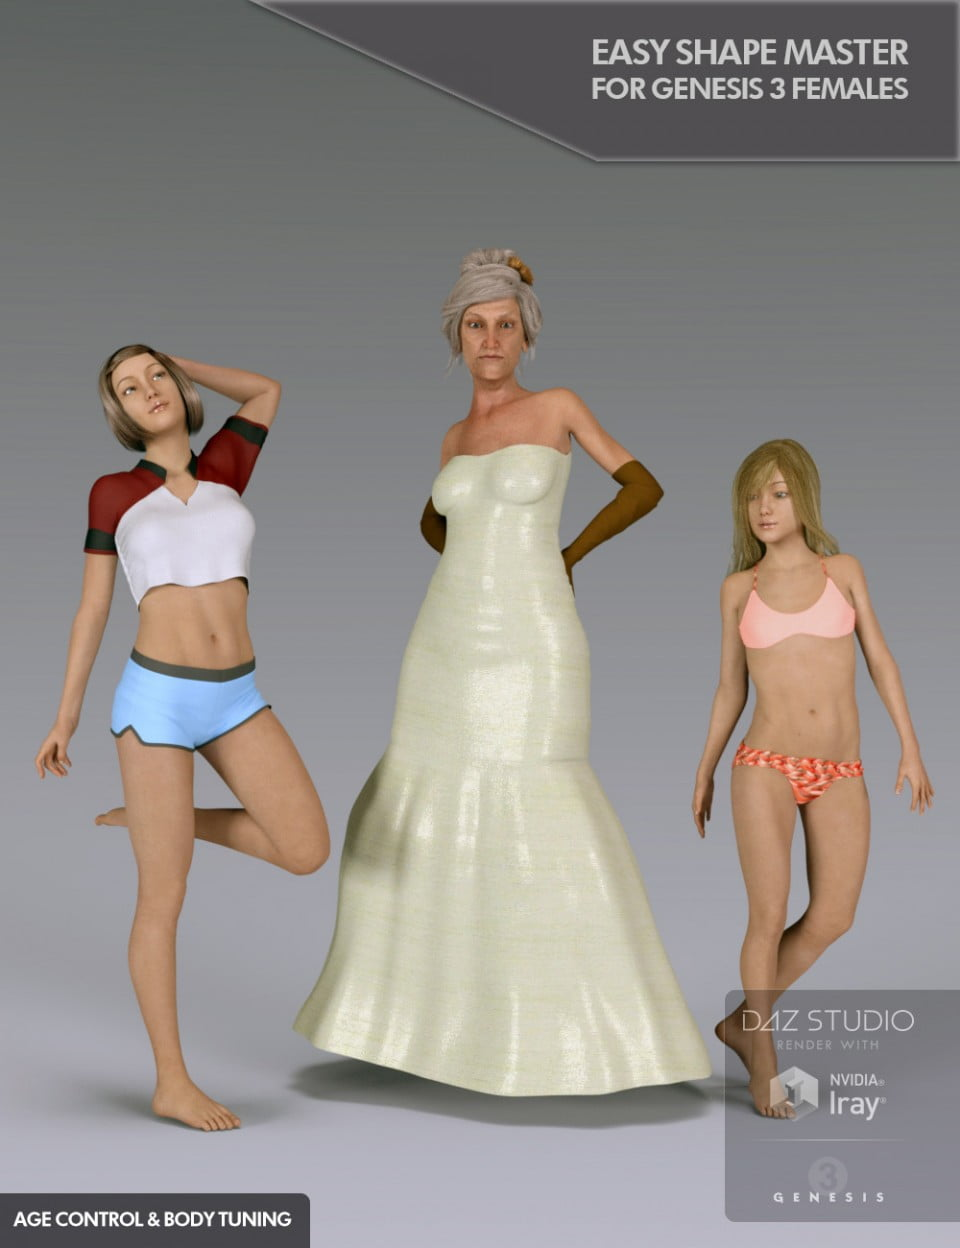 Easy Shape Master Age Control and Body Tuning for Genesis 3 Female